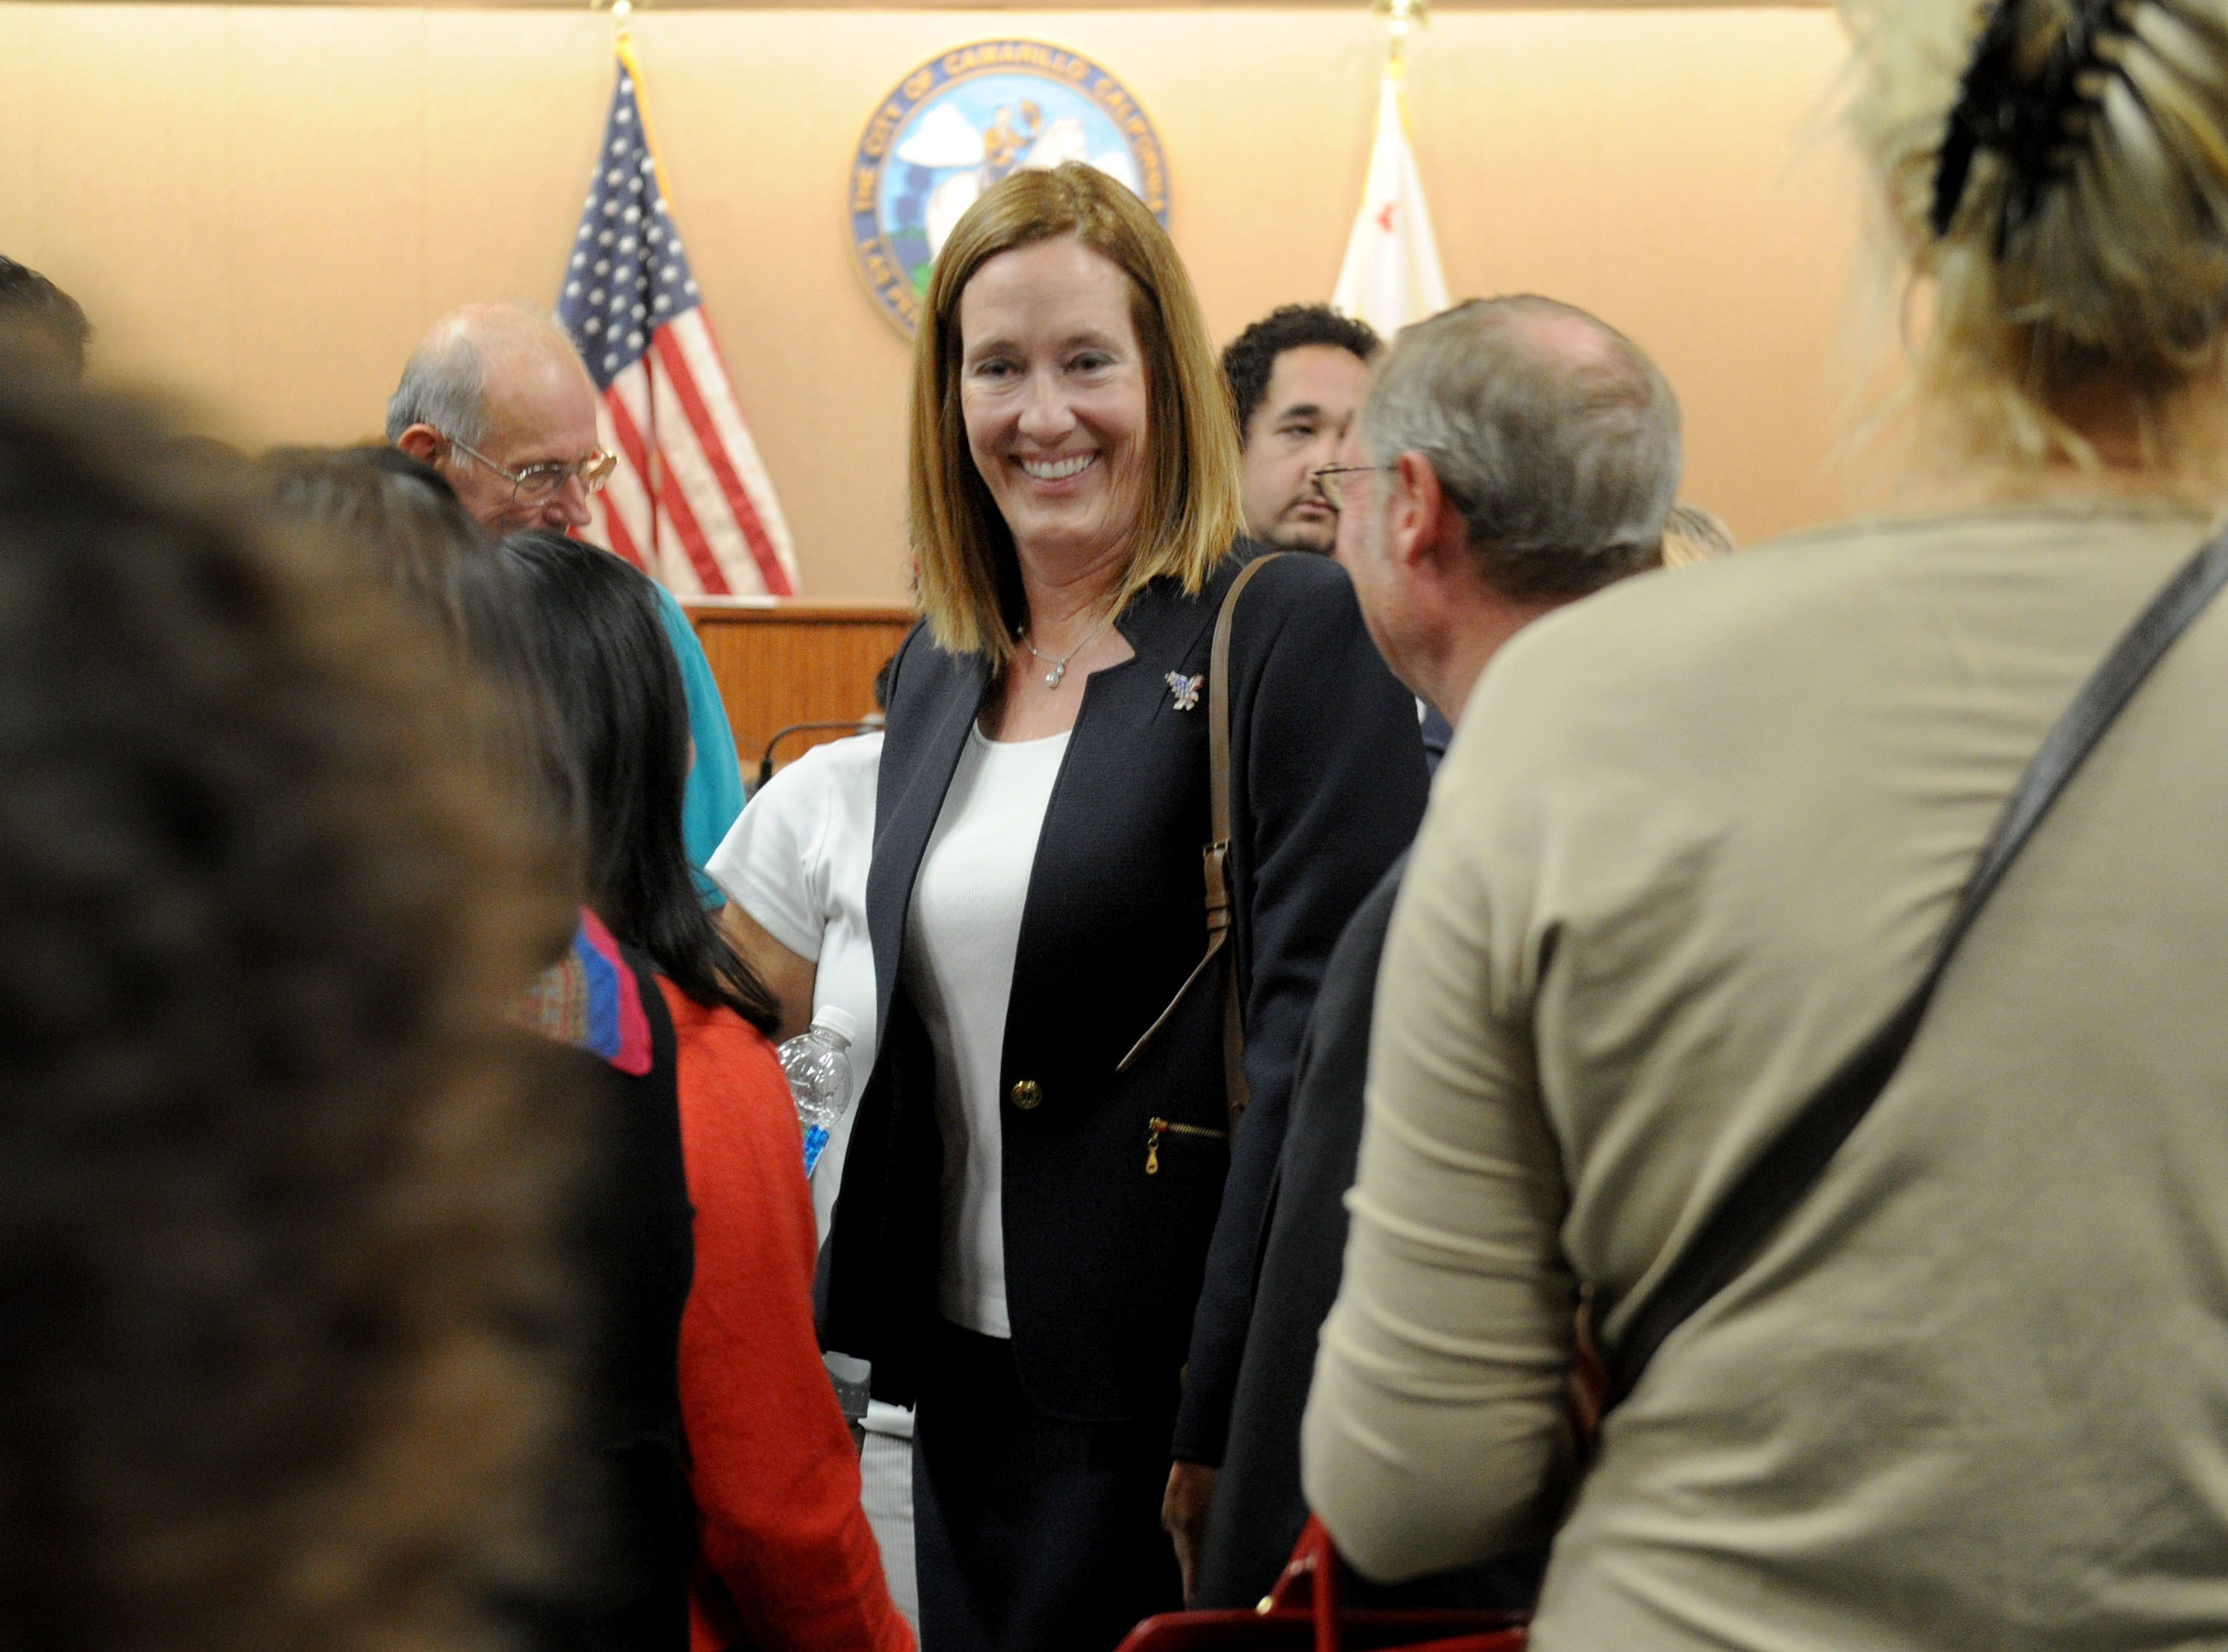 Assembly member Jacqui Irwin, D-Thousand Oaks, leaves a forum at Camarillo City Hall on Tuesday night. The incumbent is one of  two candidates for the 44th Assembly District.